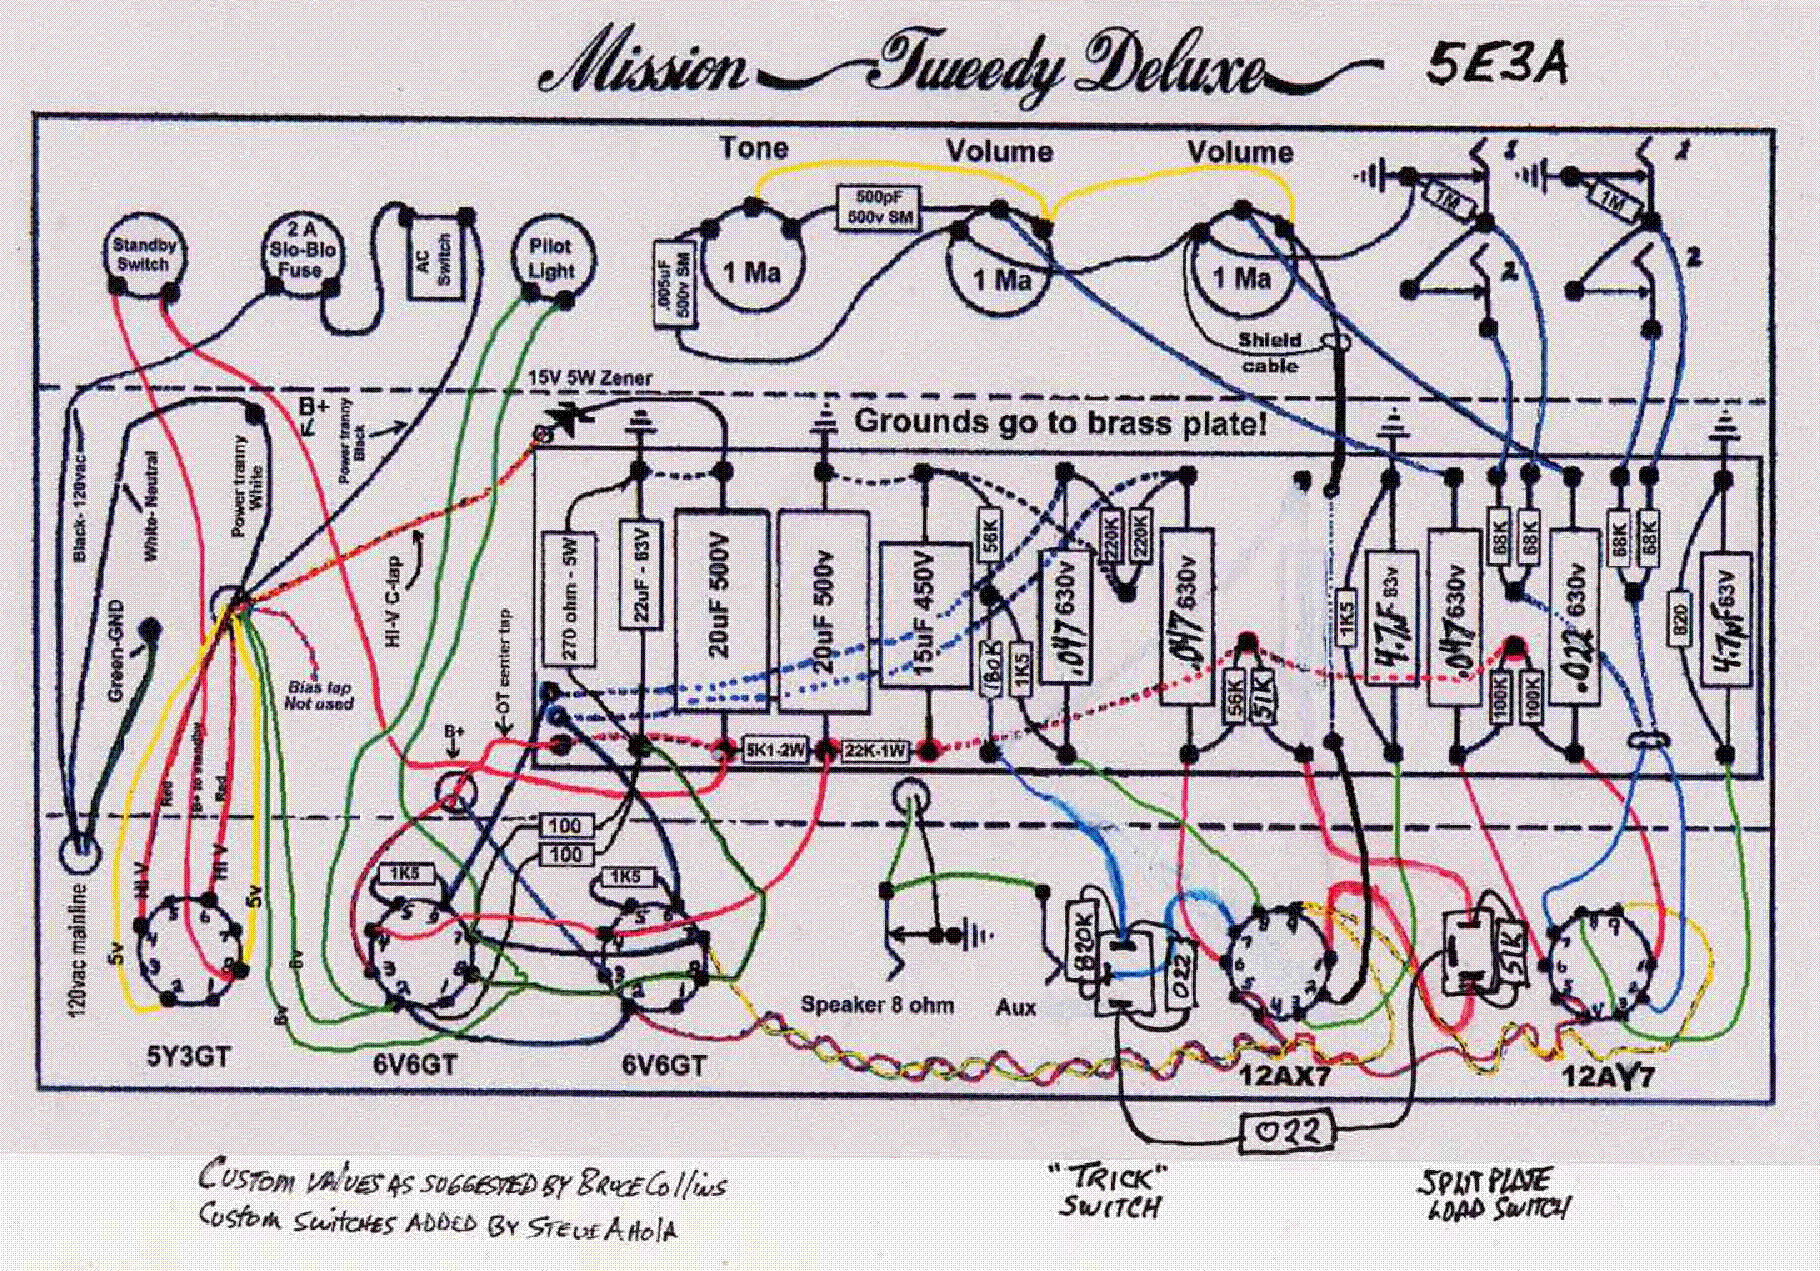 Fender Deluxe 5e3a Layout Service Manual Download